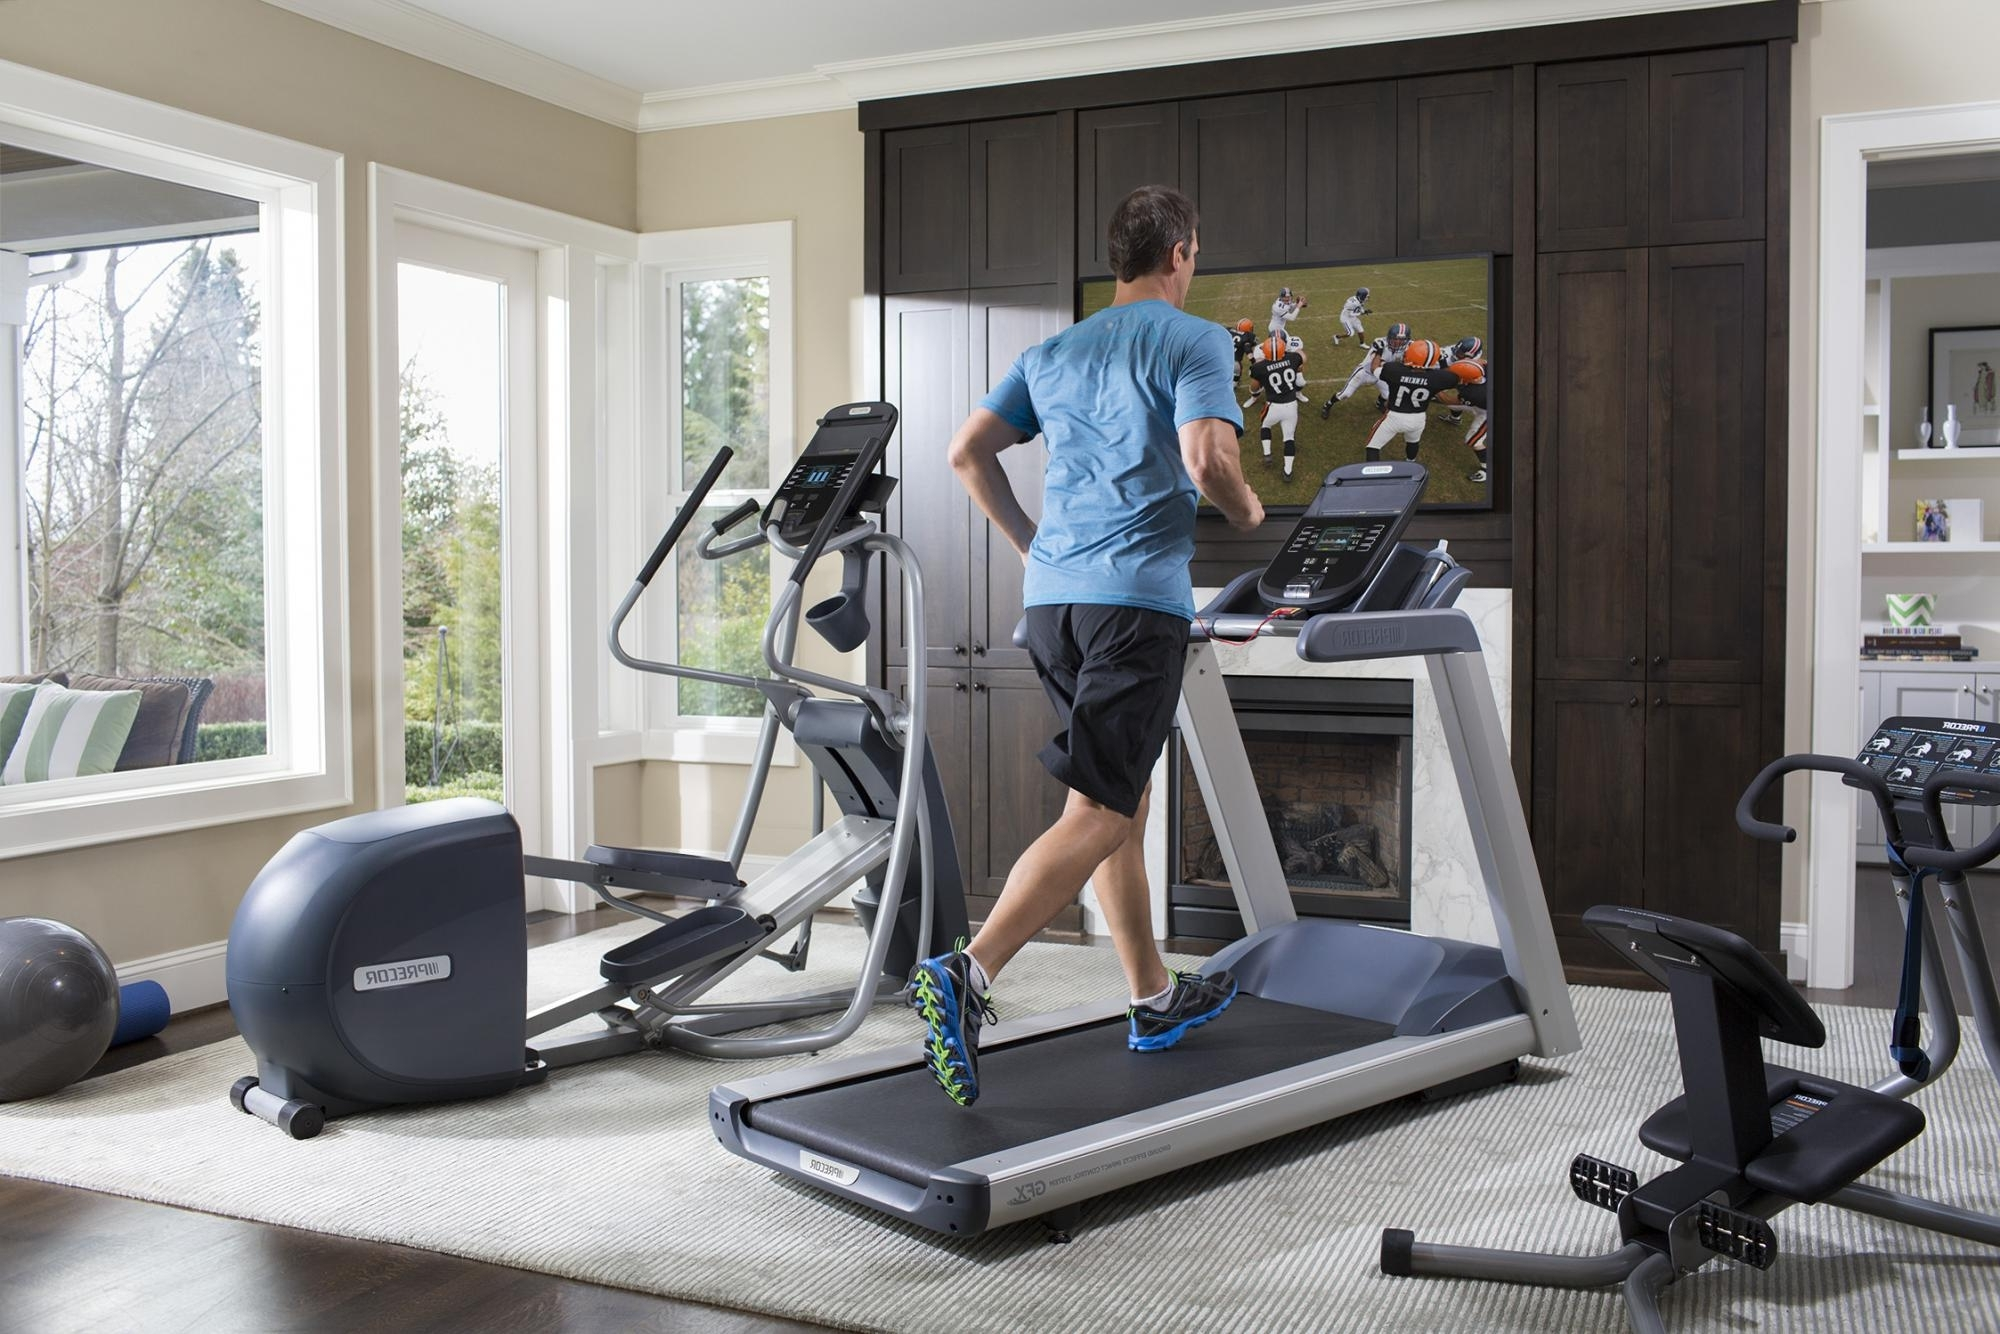 Work In Some Workout Room Right At Home Precor (Us) Decorate Living Room With Treadmill